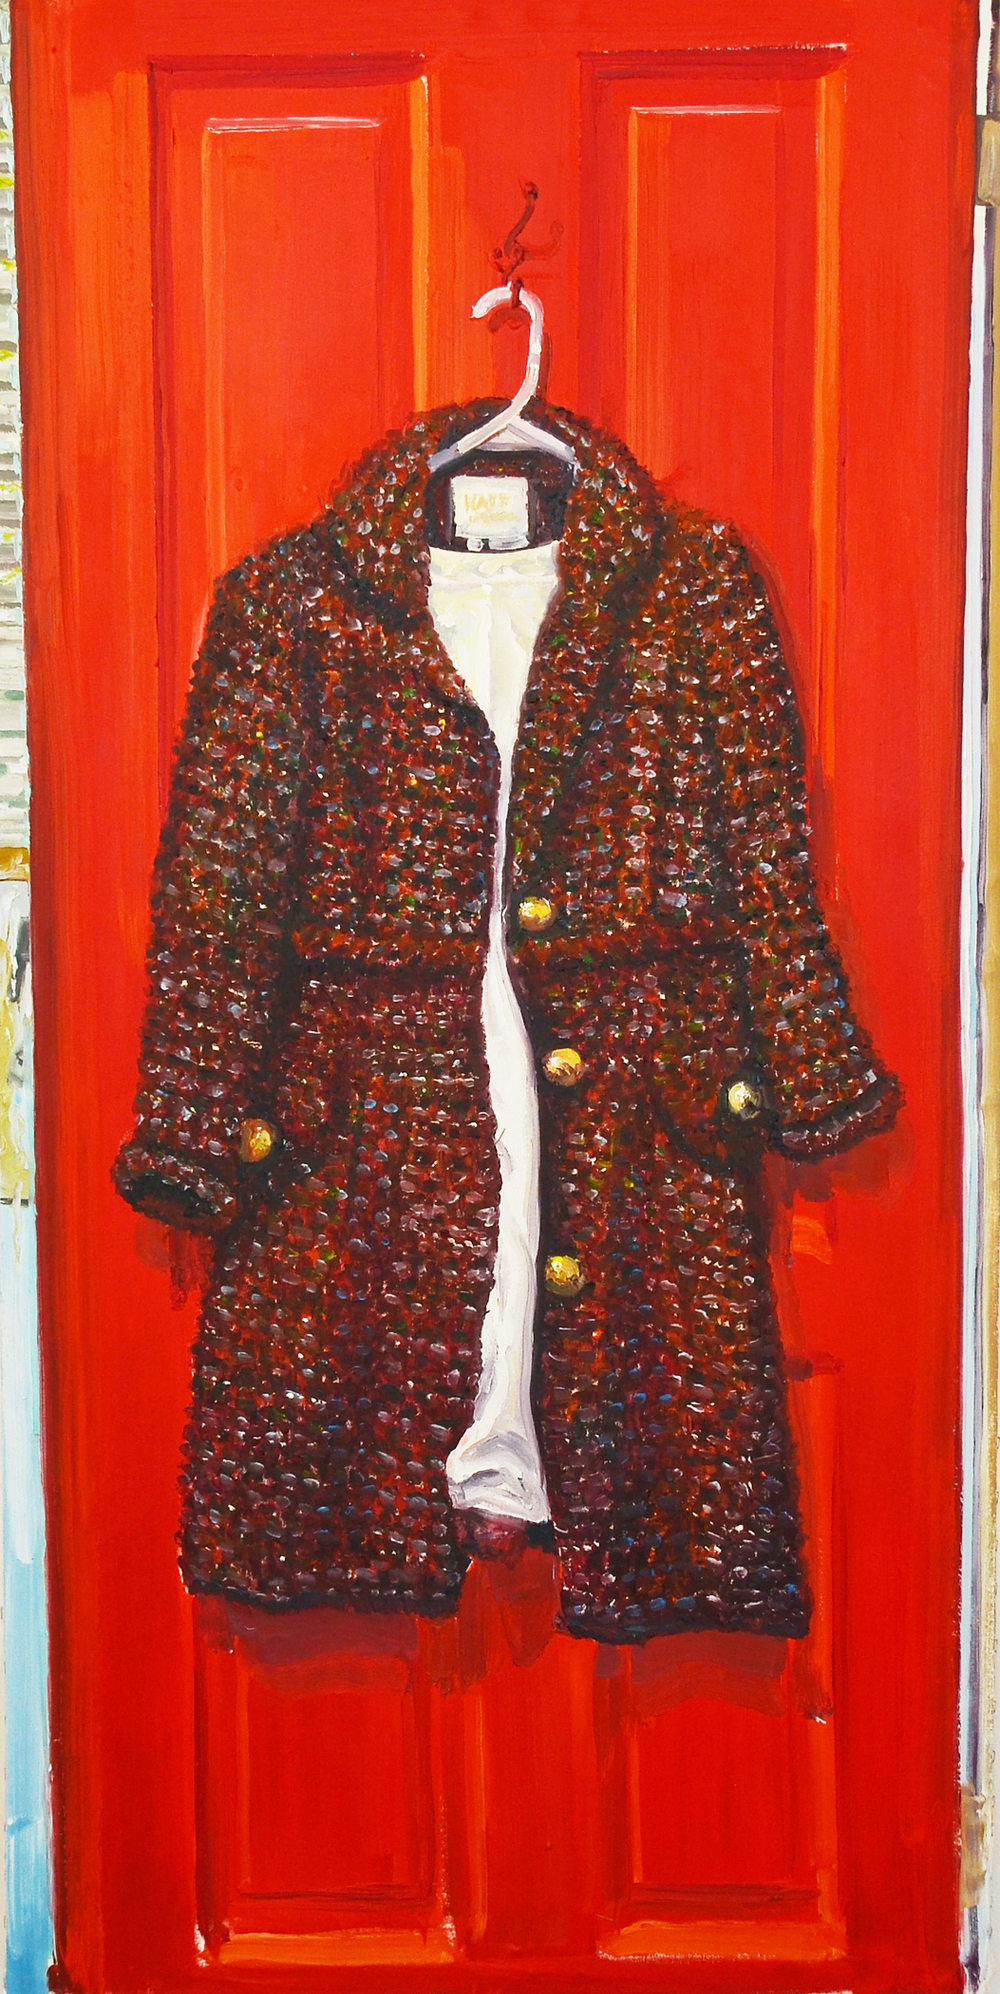 Her Coat -  oil on canvas, 58 x 29 in